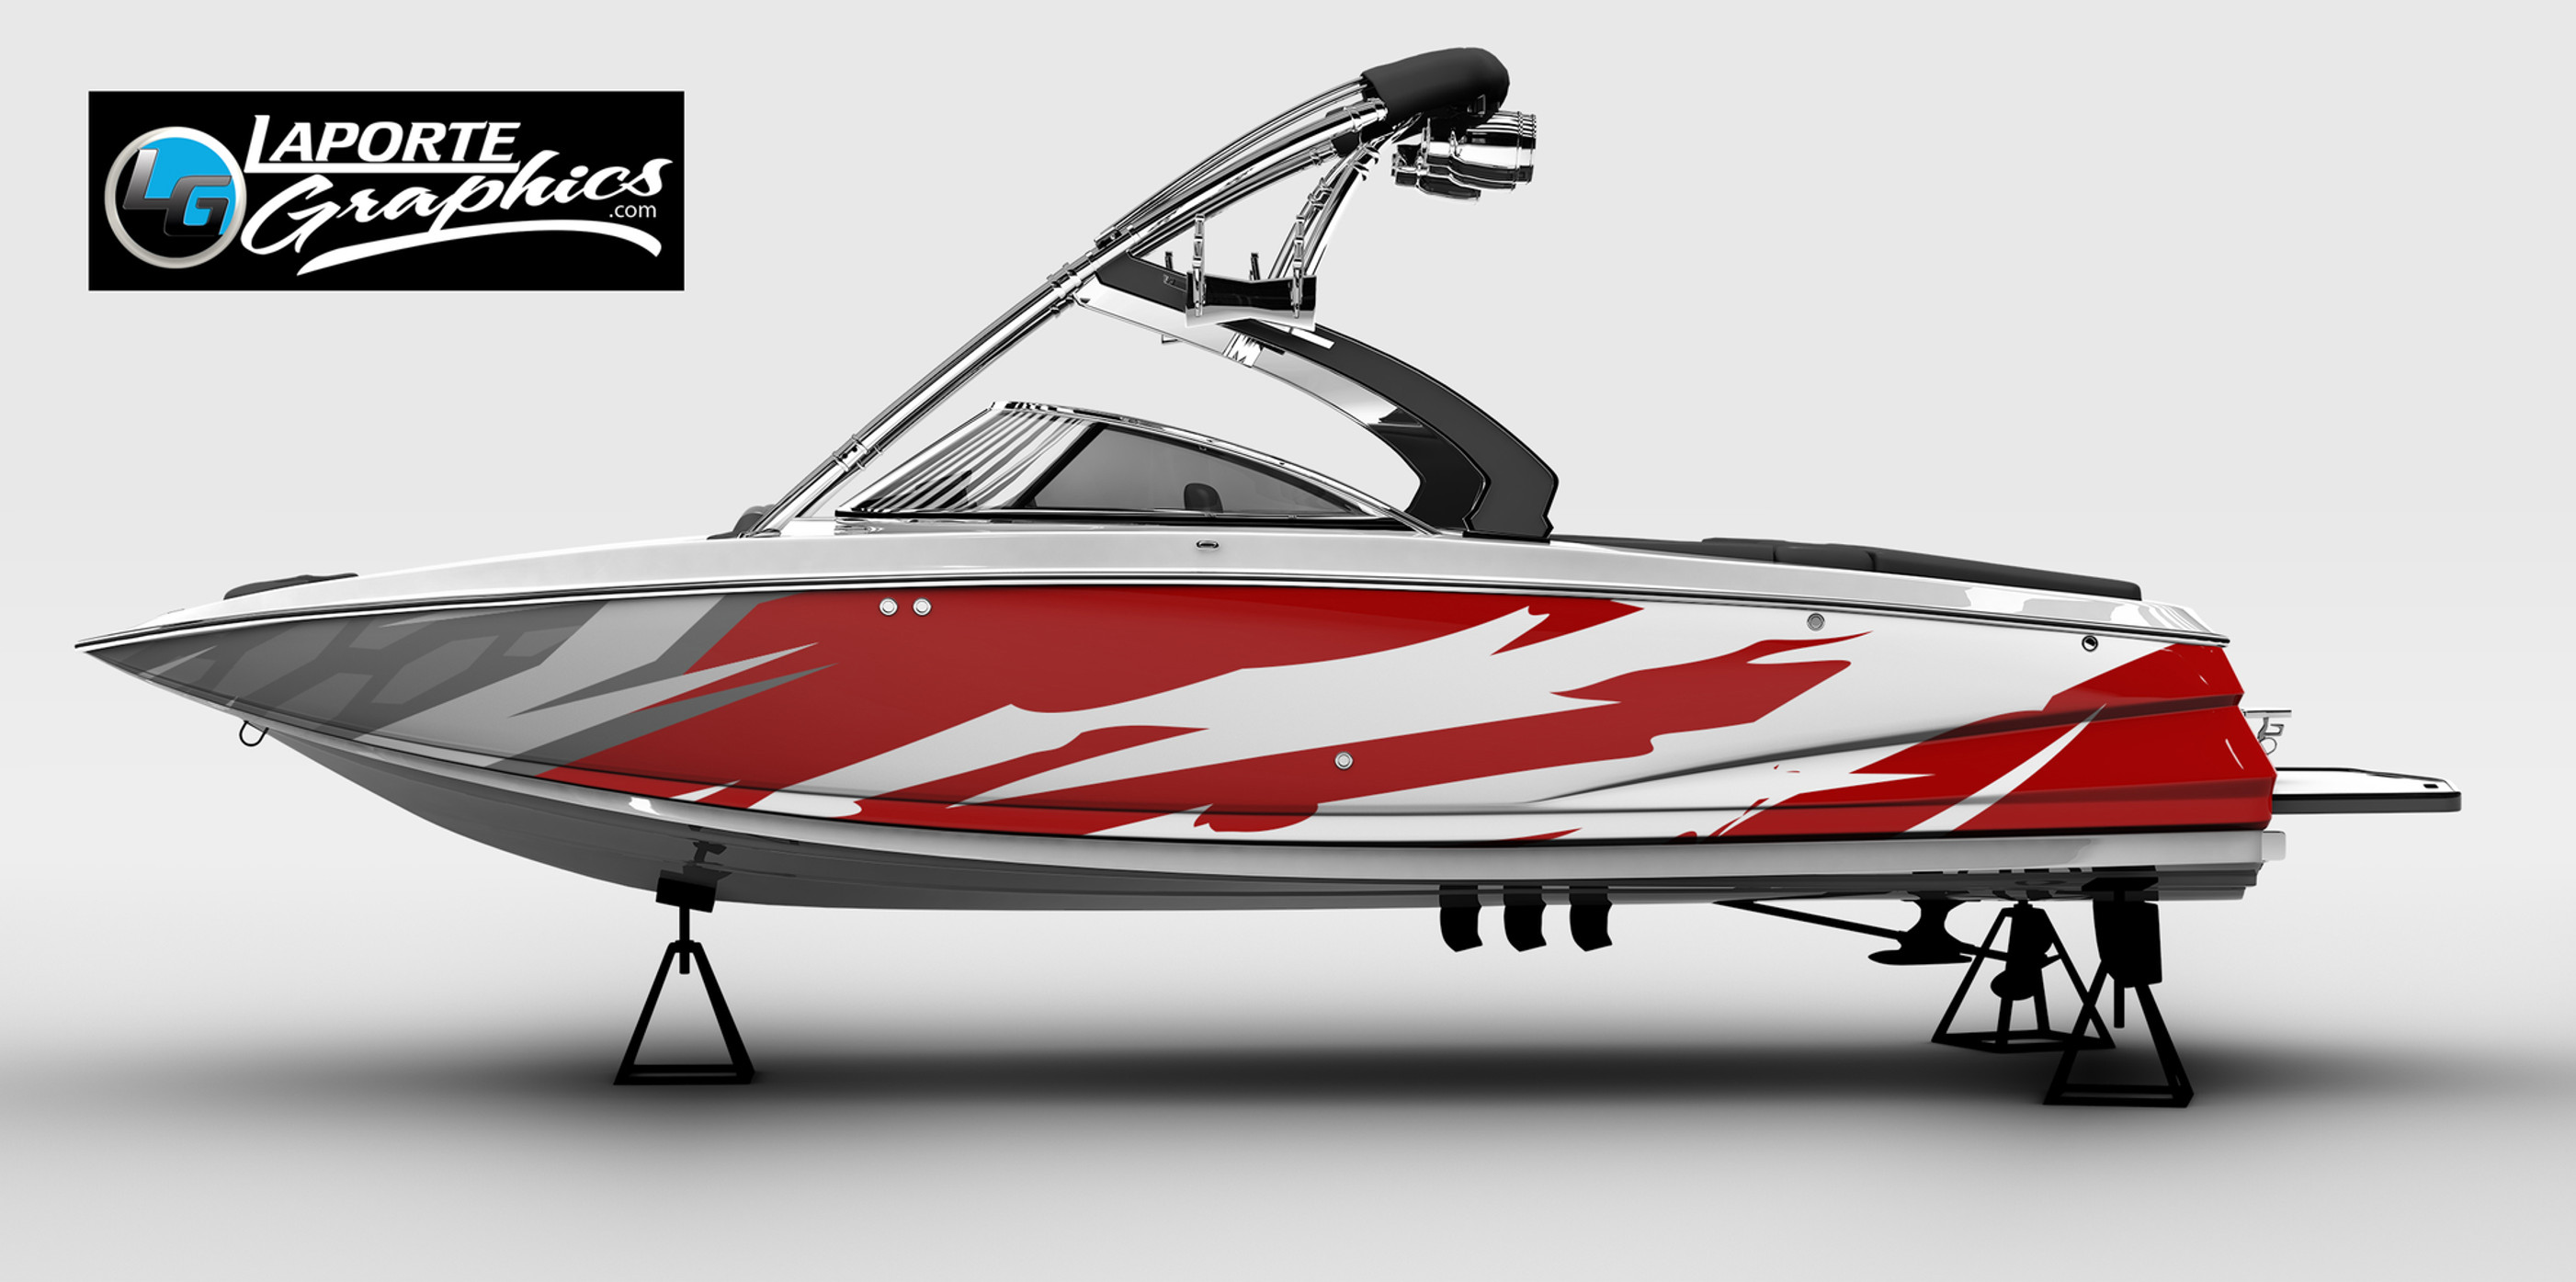 Boat Wraps And Boat Graphics Laporte Graphics